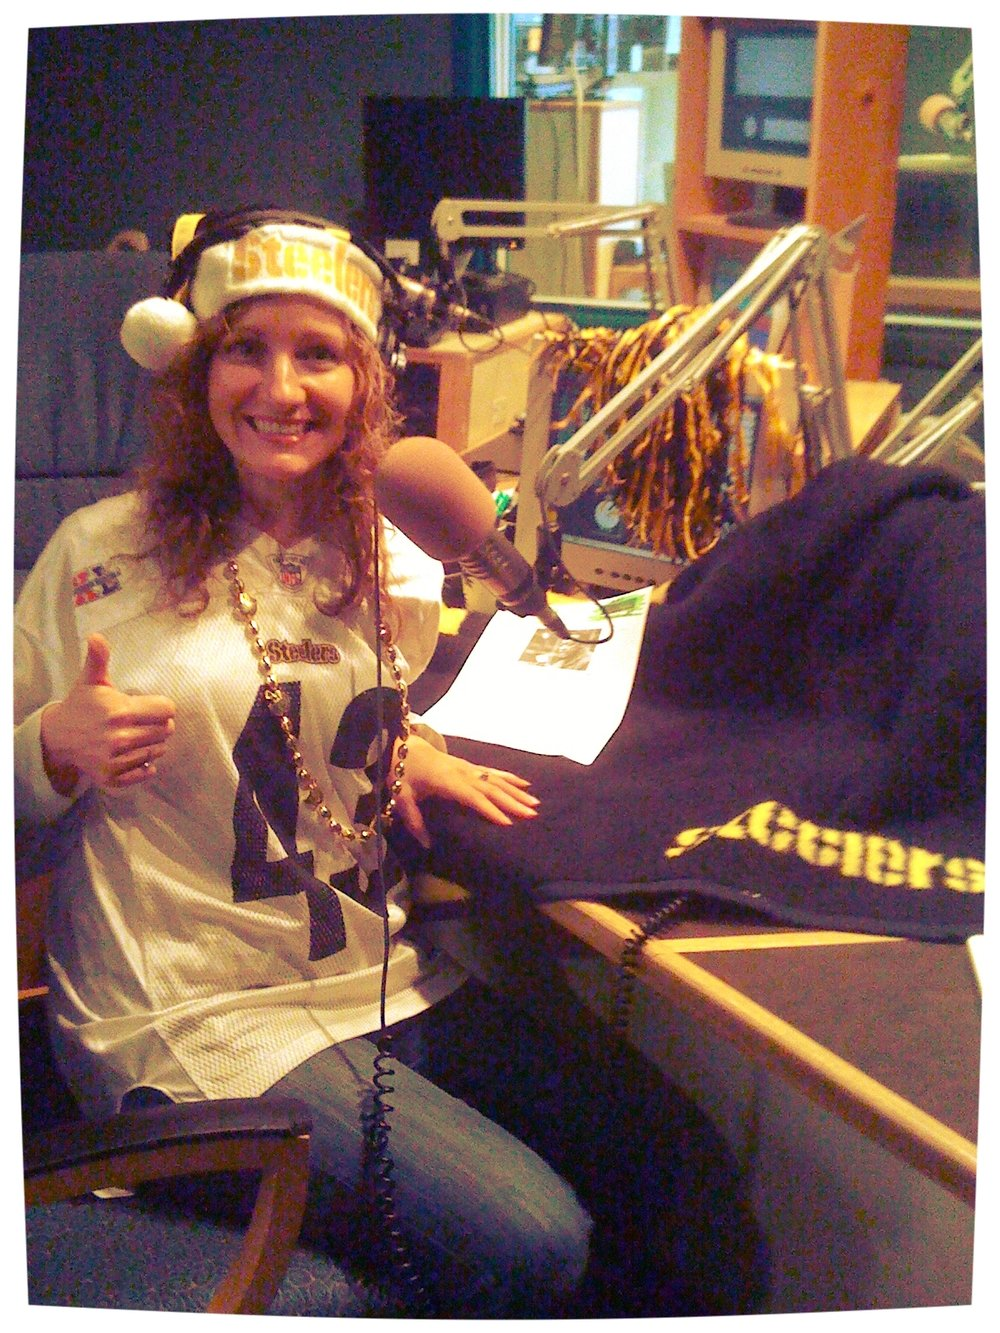 in studio, the Friday before Super Bowl XLV (2011)